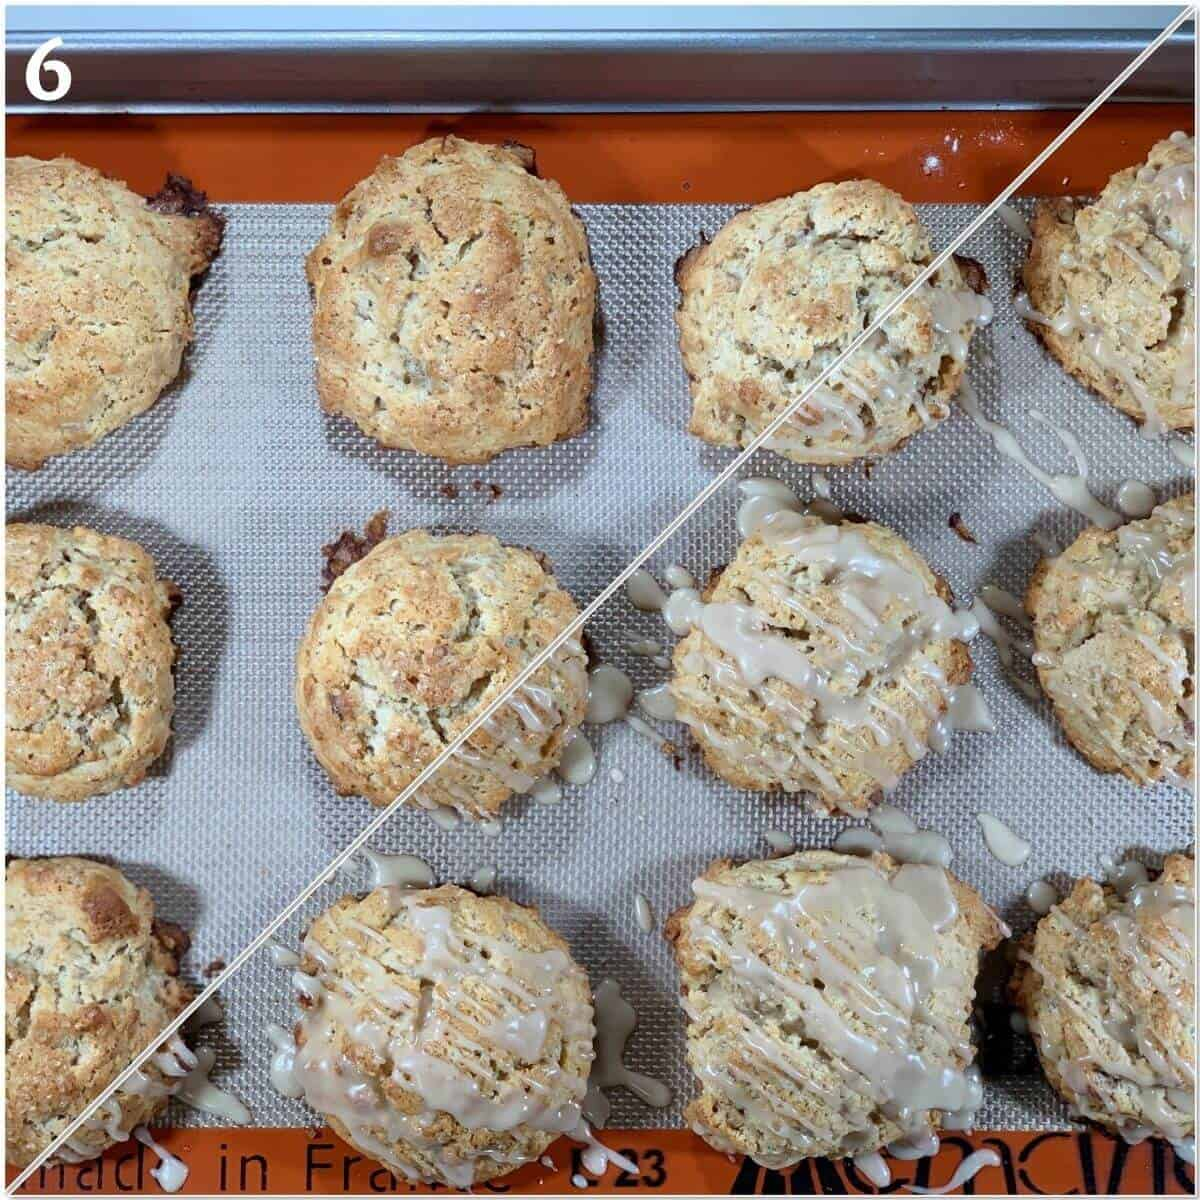 Collage of Maple Walnut scones after baking and glazing.